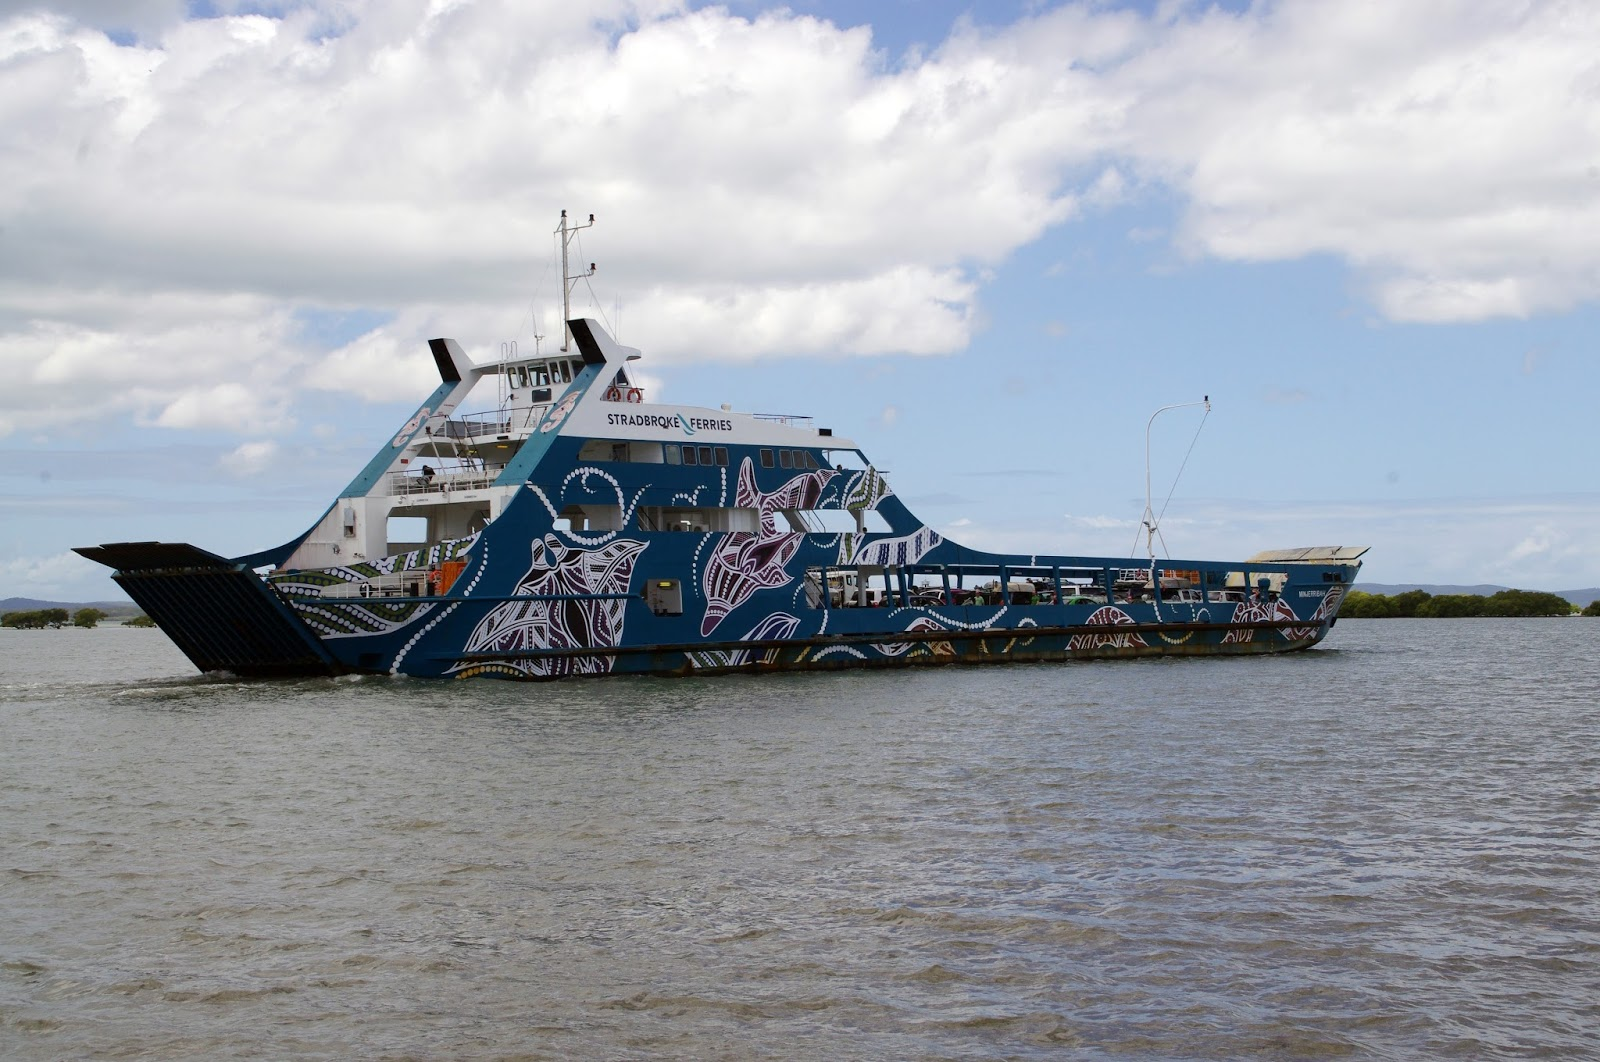 Stradbroke Island Ferries